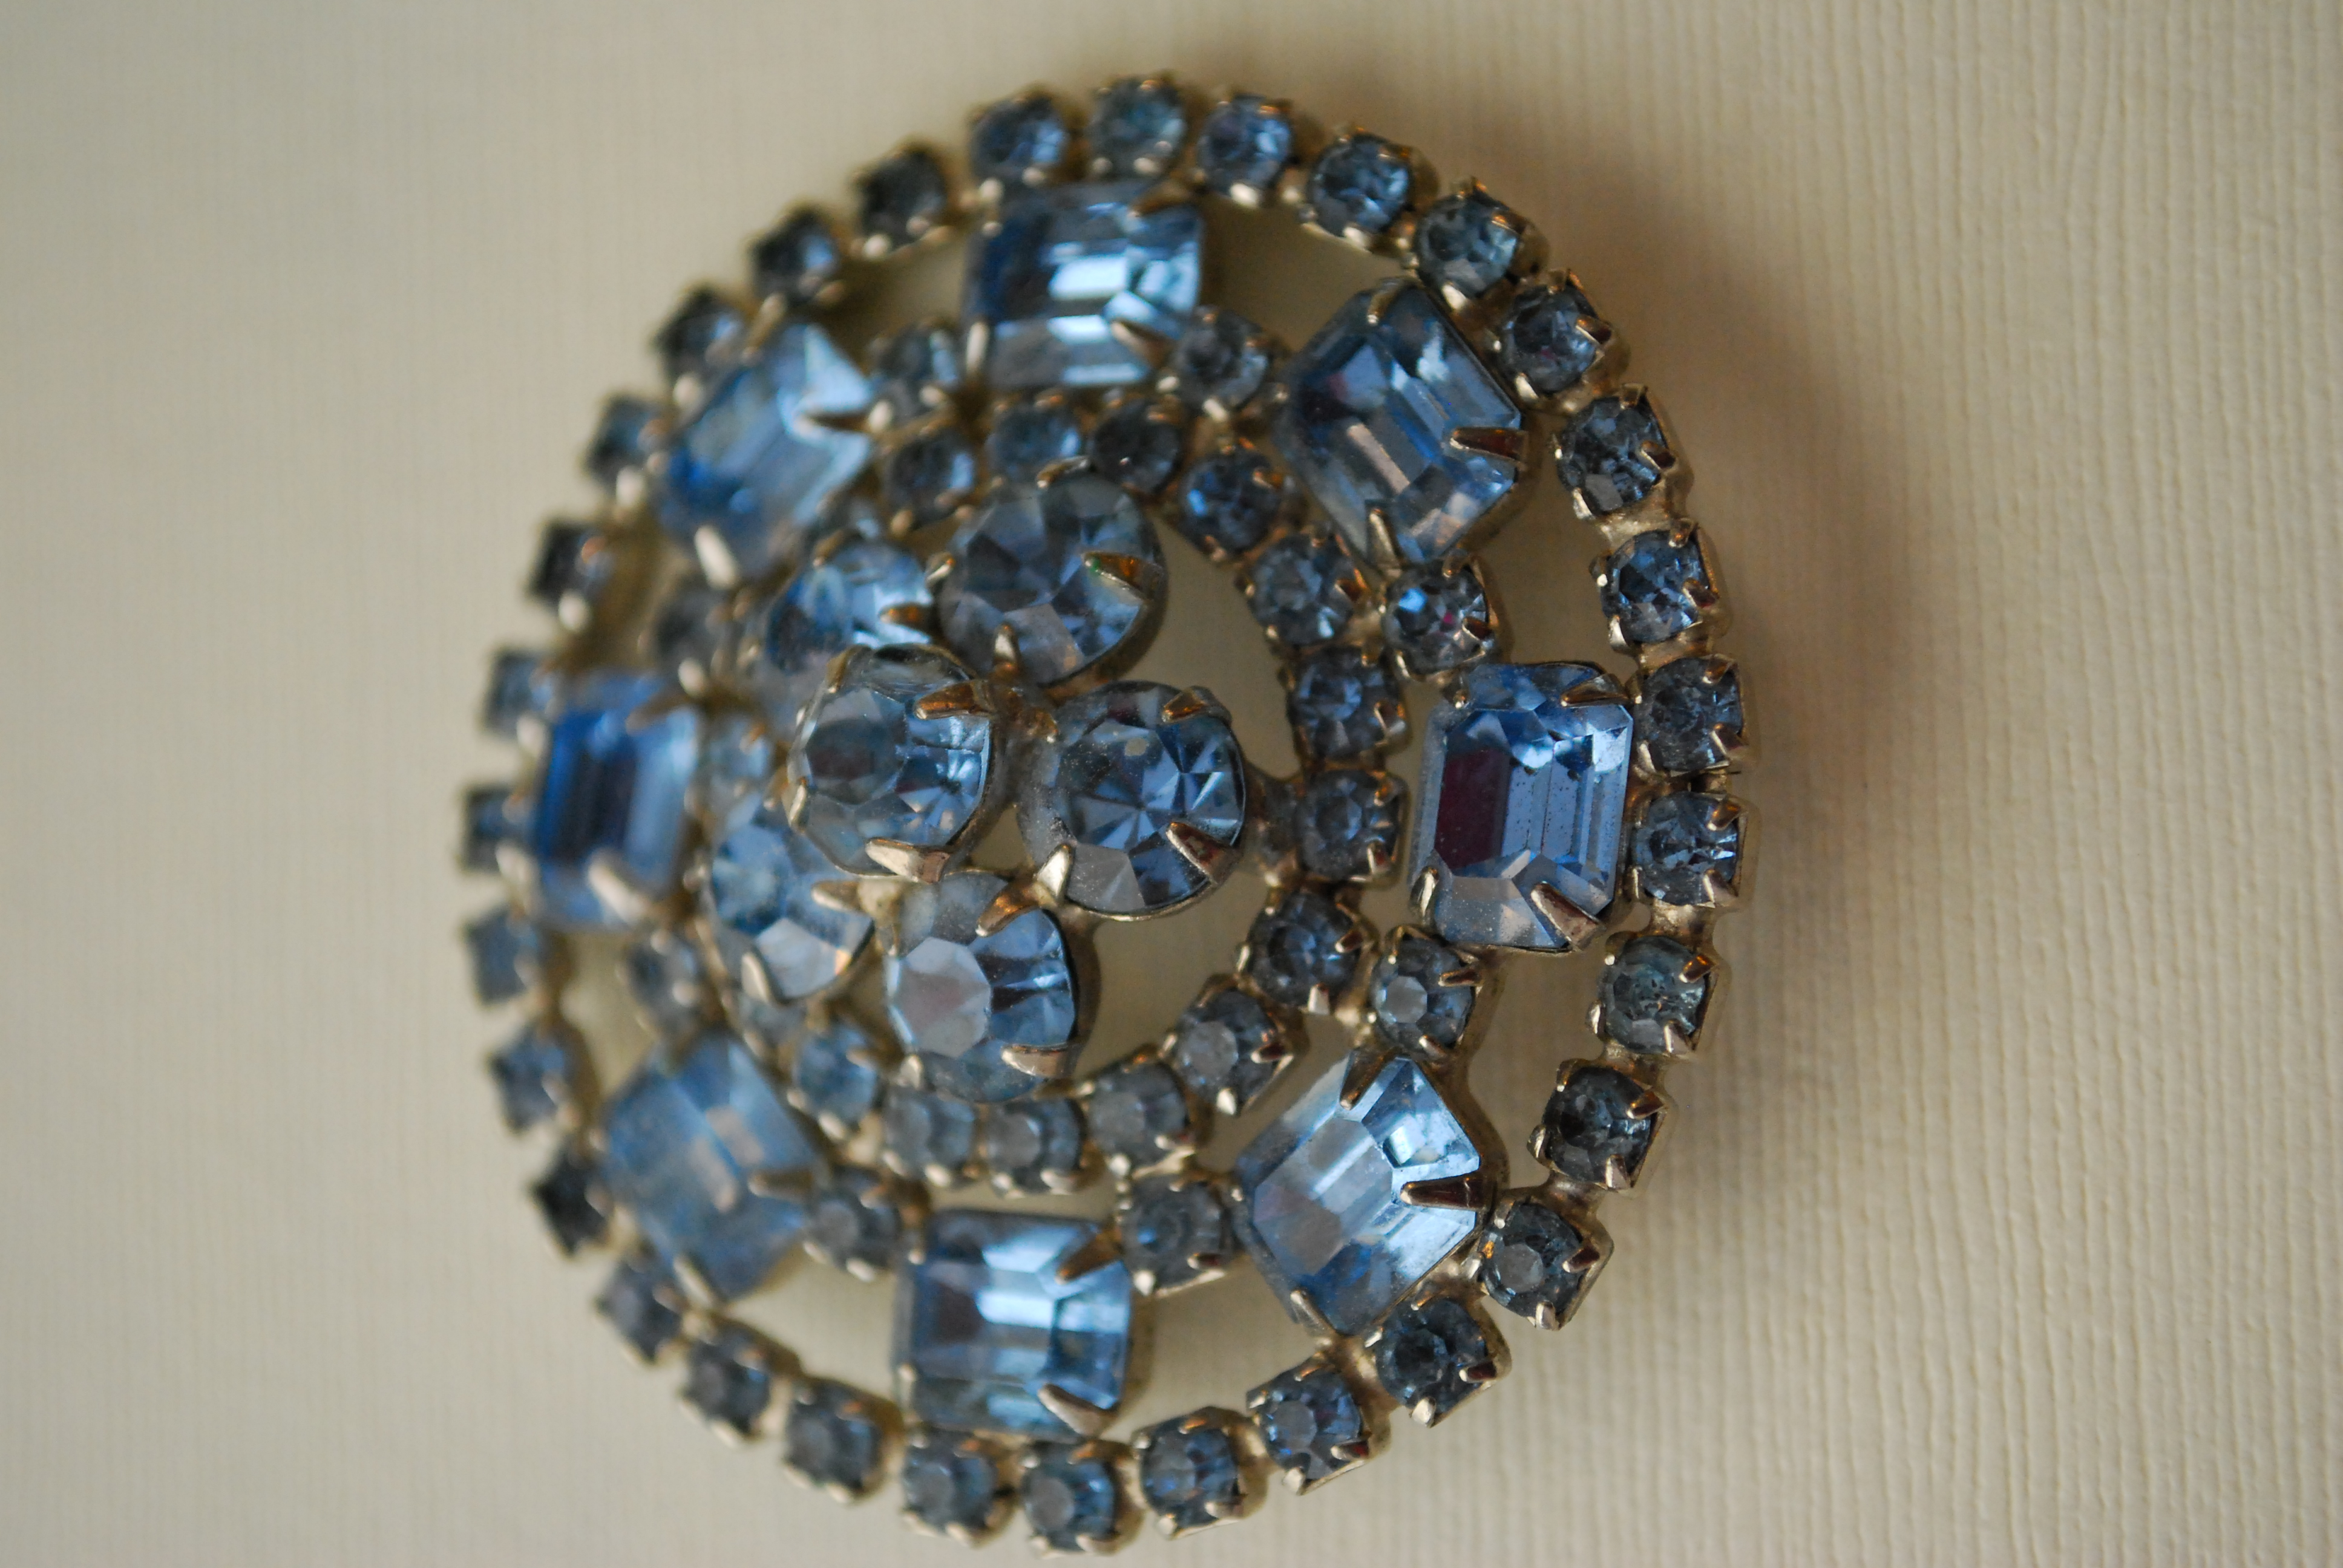 Close-up of a broach with blue gemstones decorating it